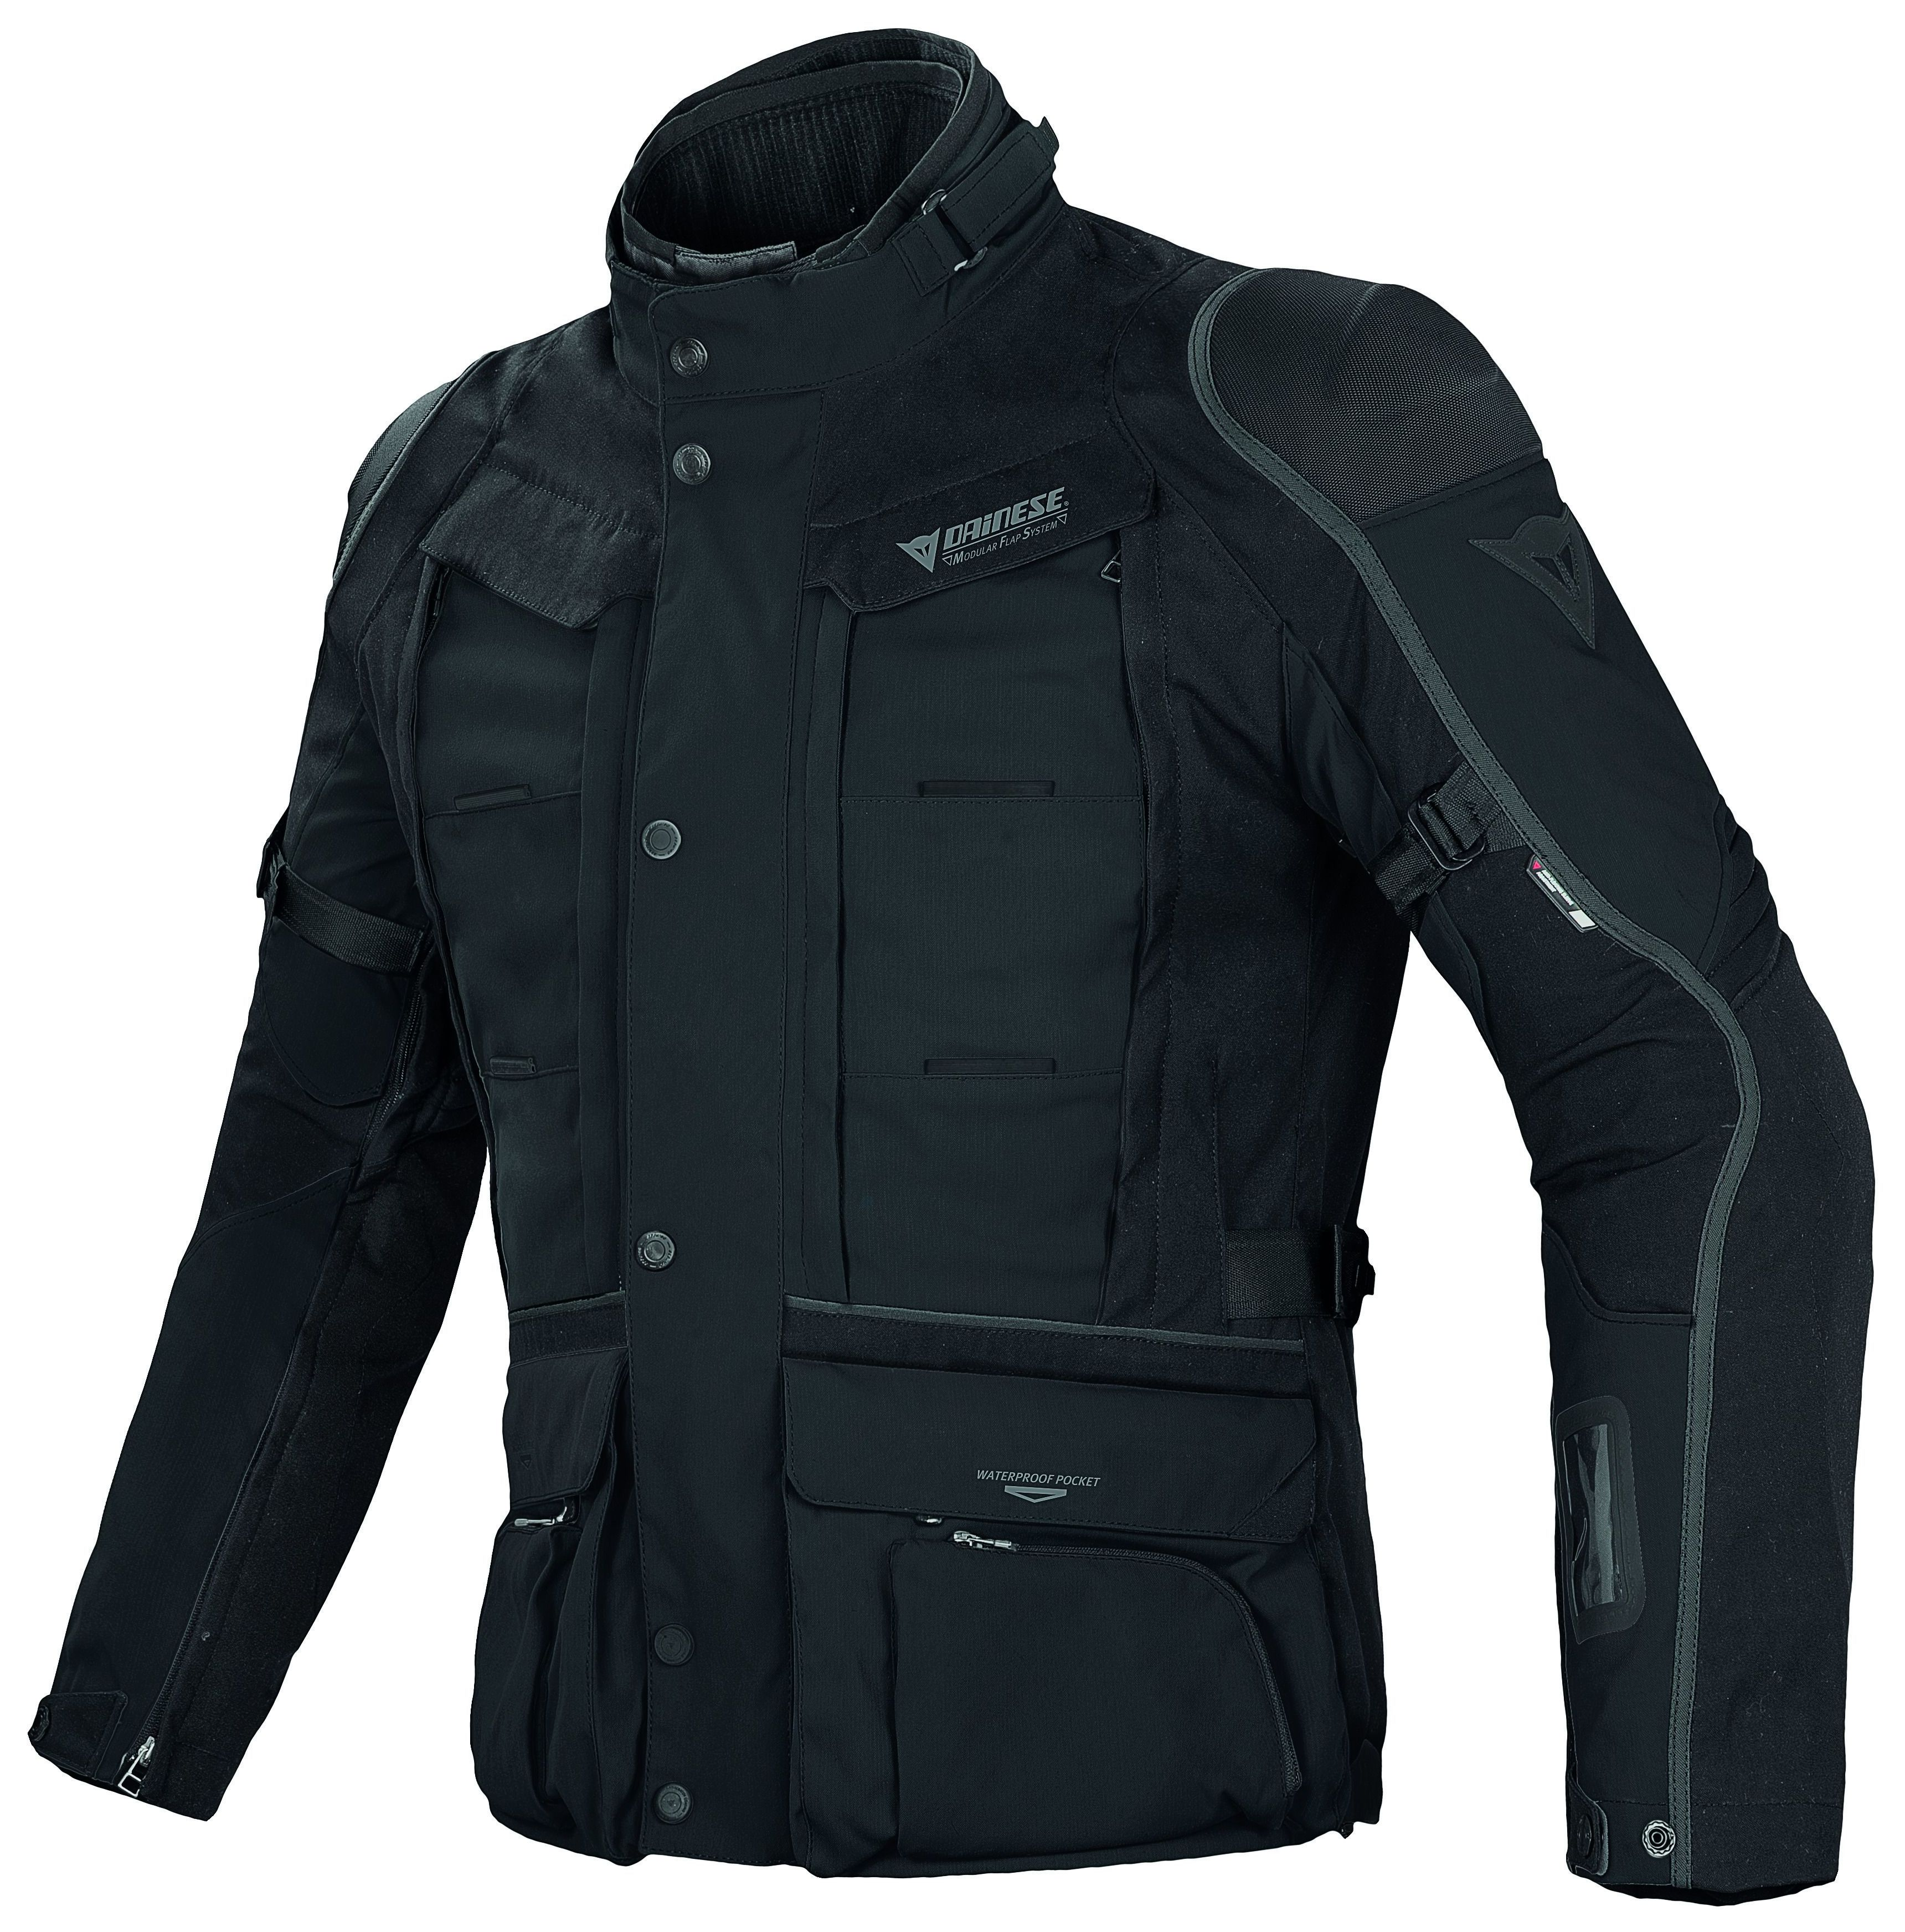 dainese d explorer gore tex jacket revzilla. Black Bedroom Furniture Sets. Home Design Ideas